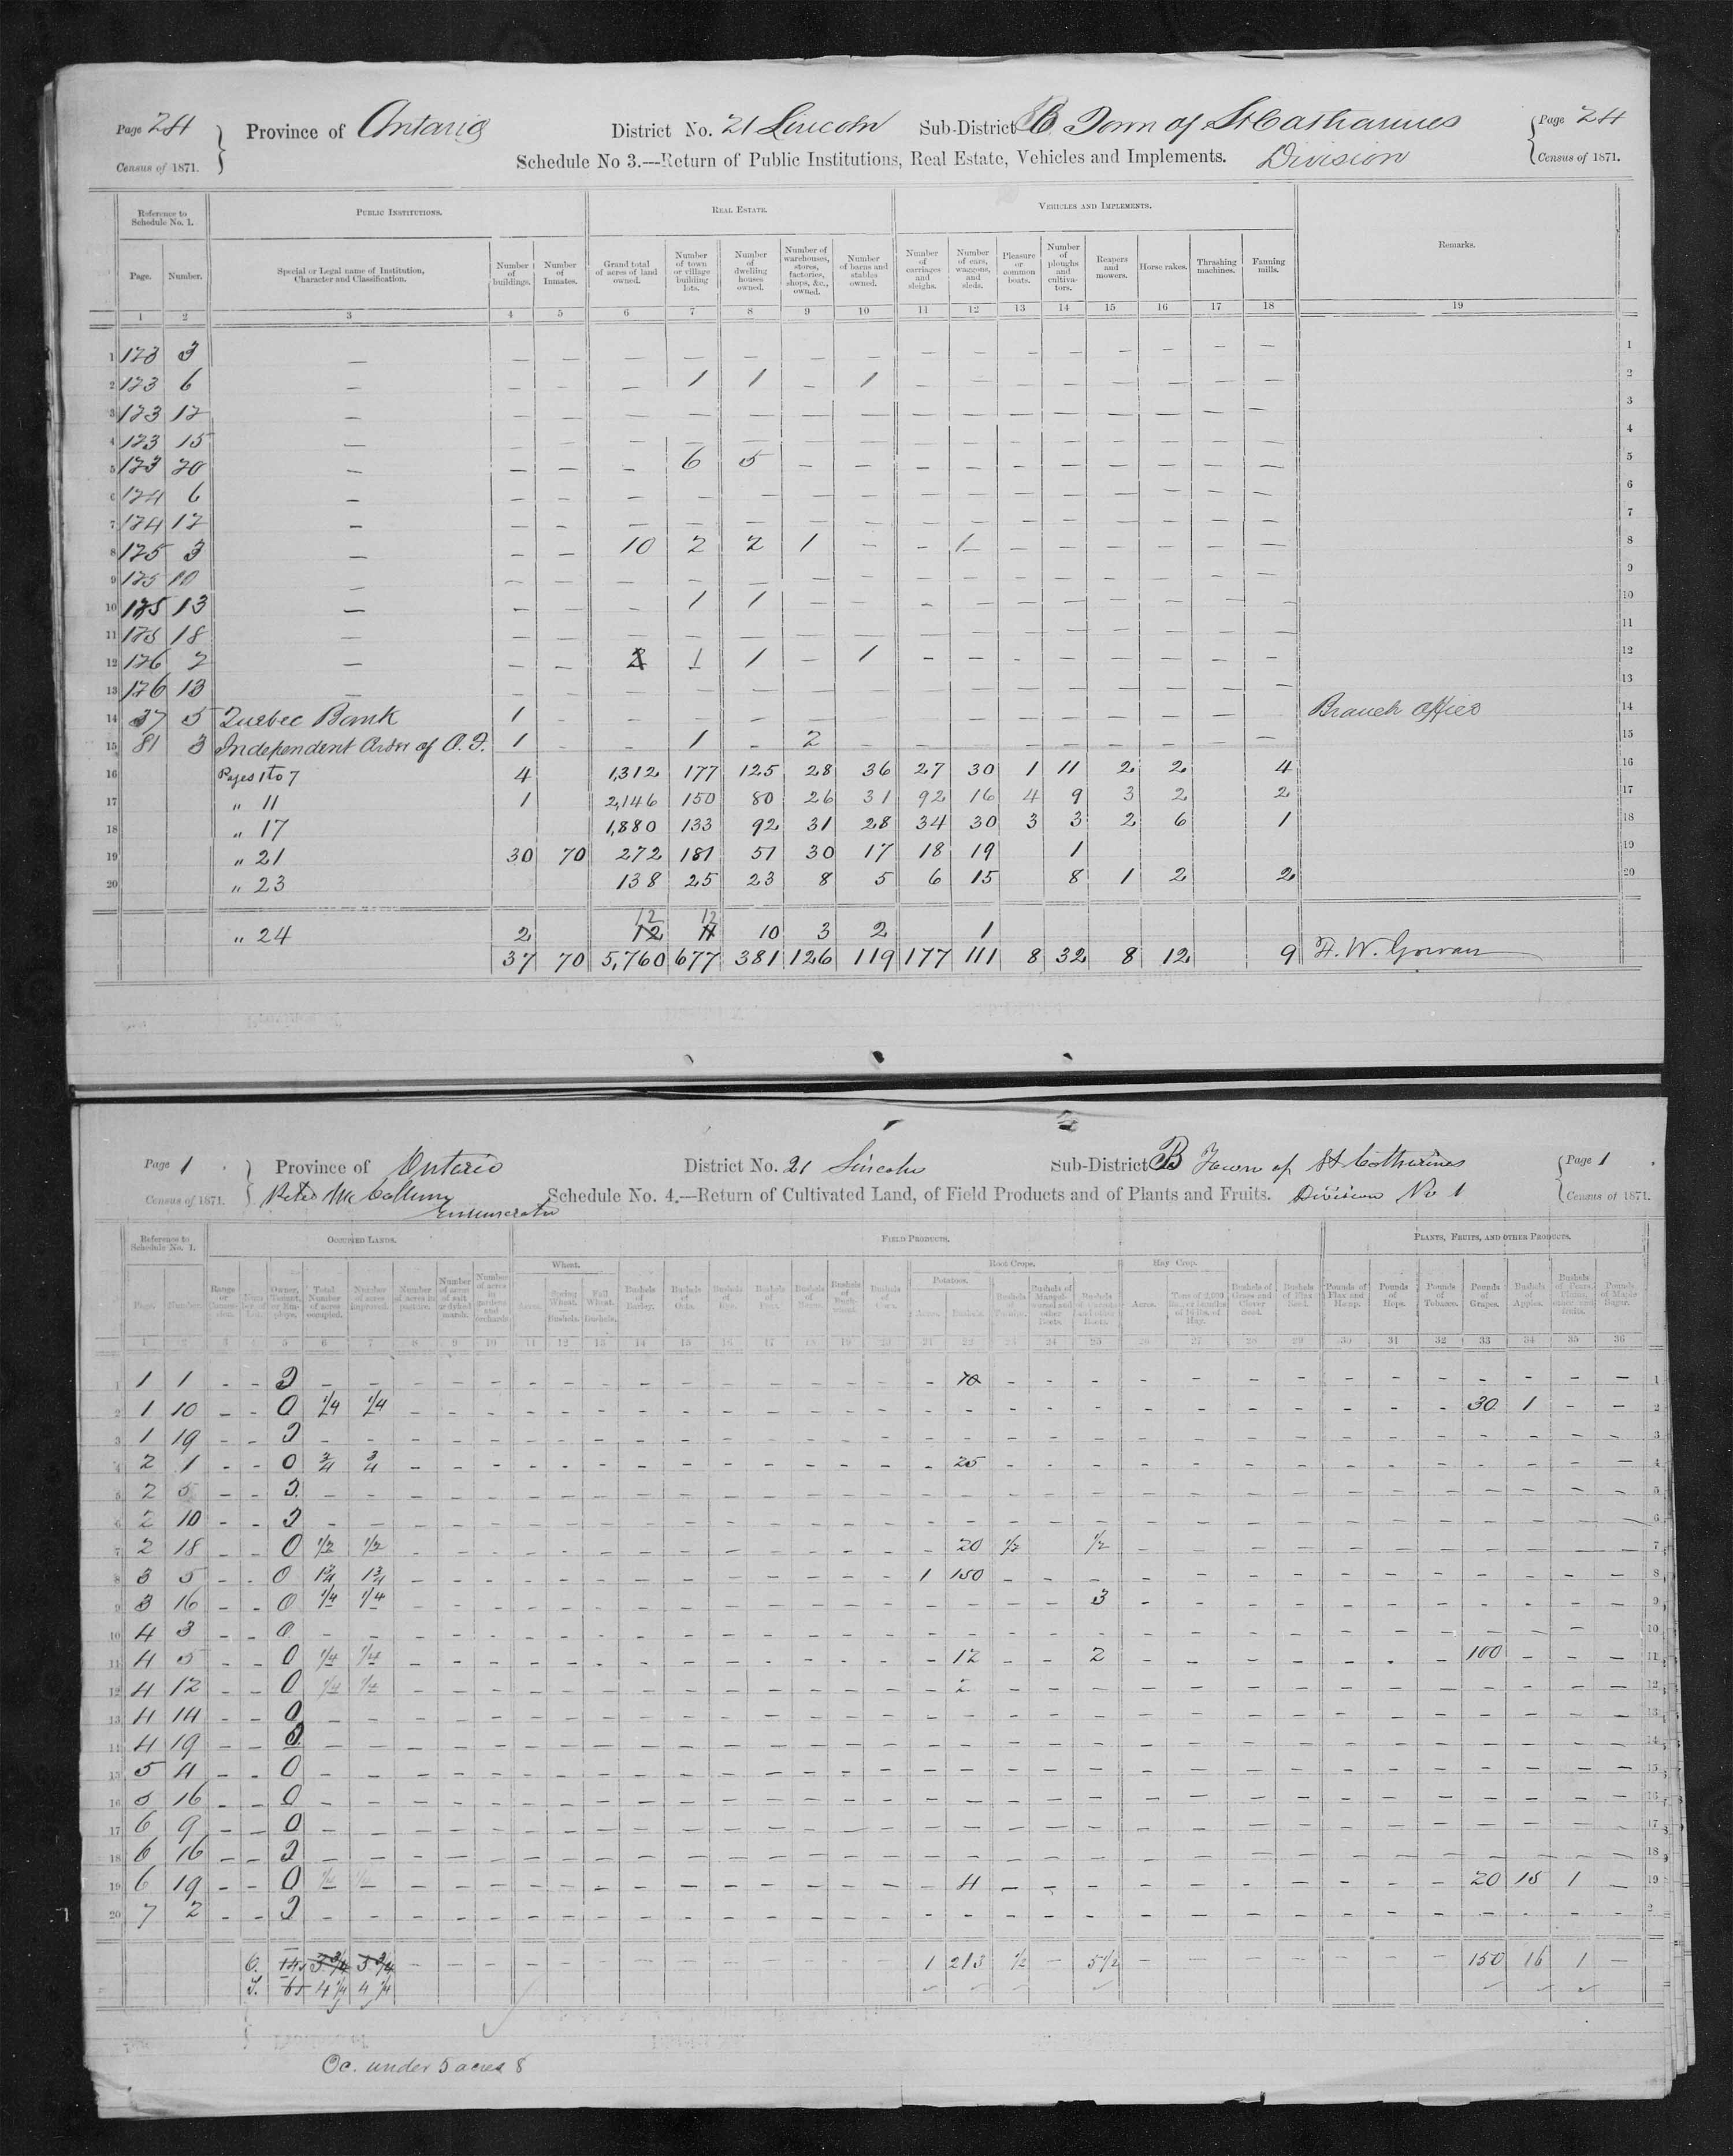 Title: Census of Canada, 1871 - Mikan Number: 142105 - Microform: c-9922